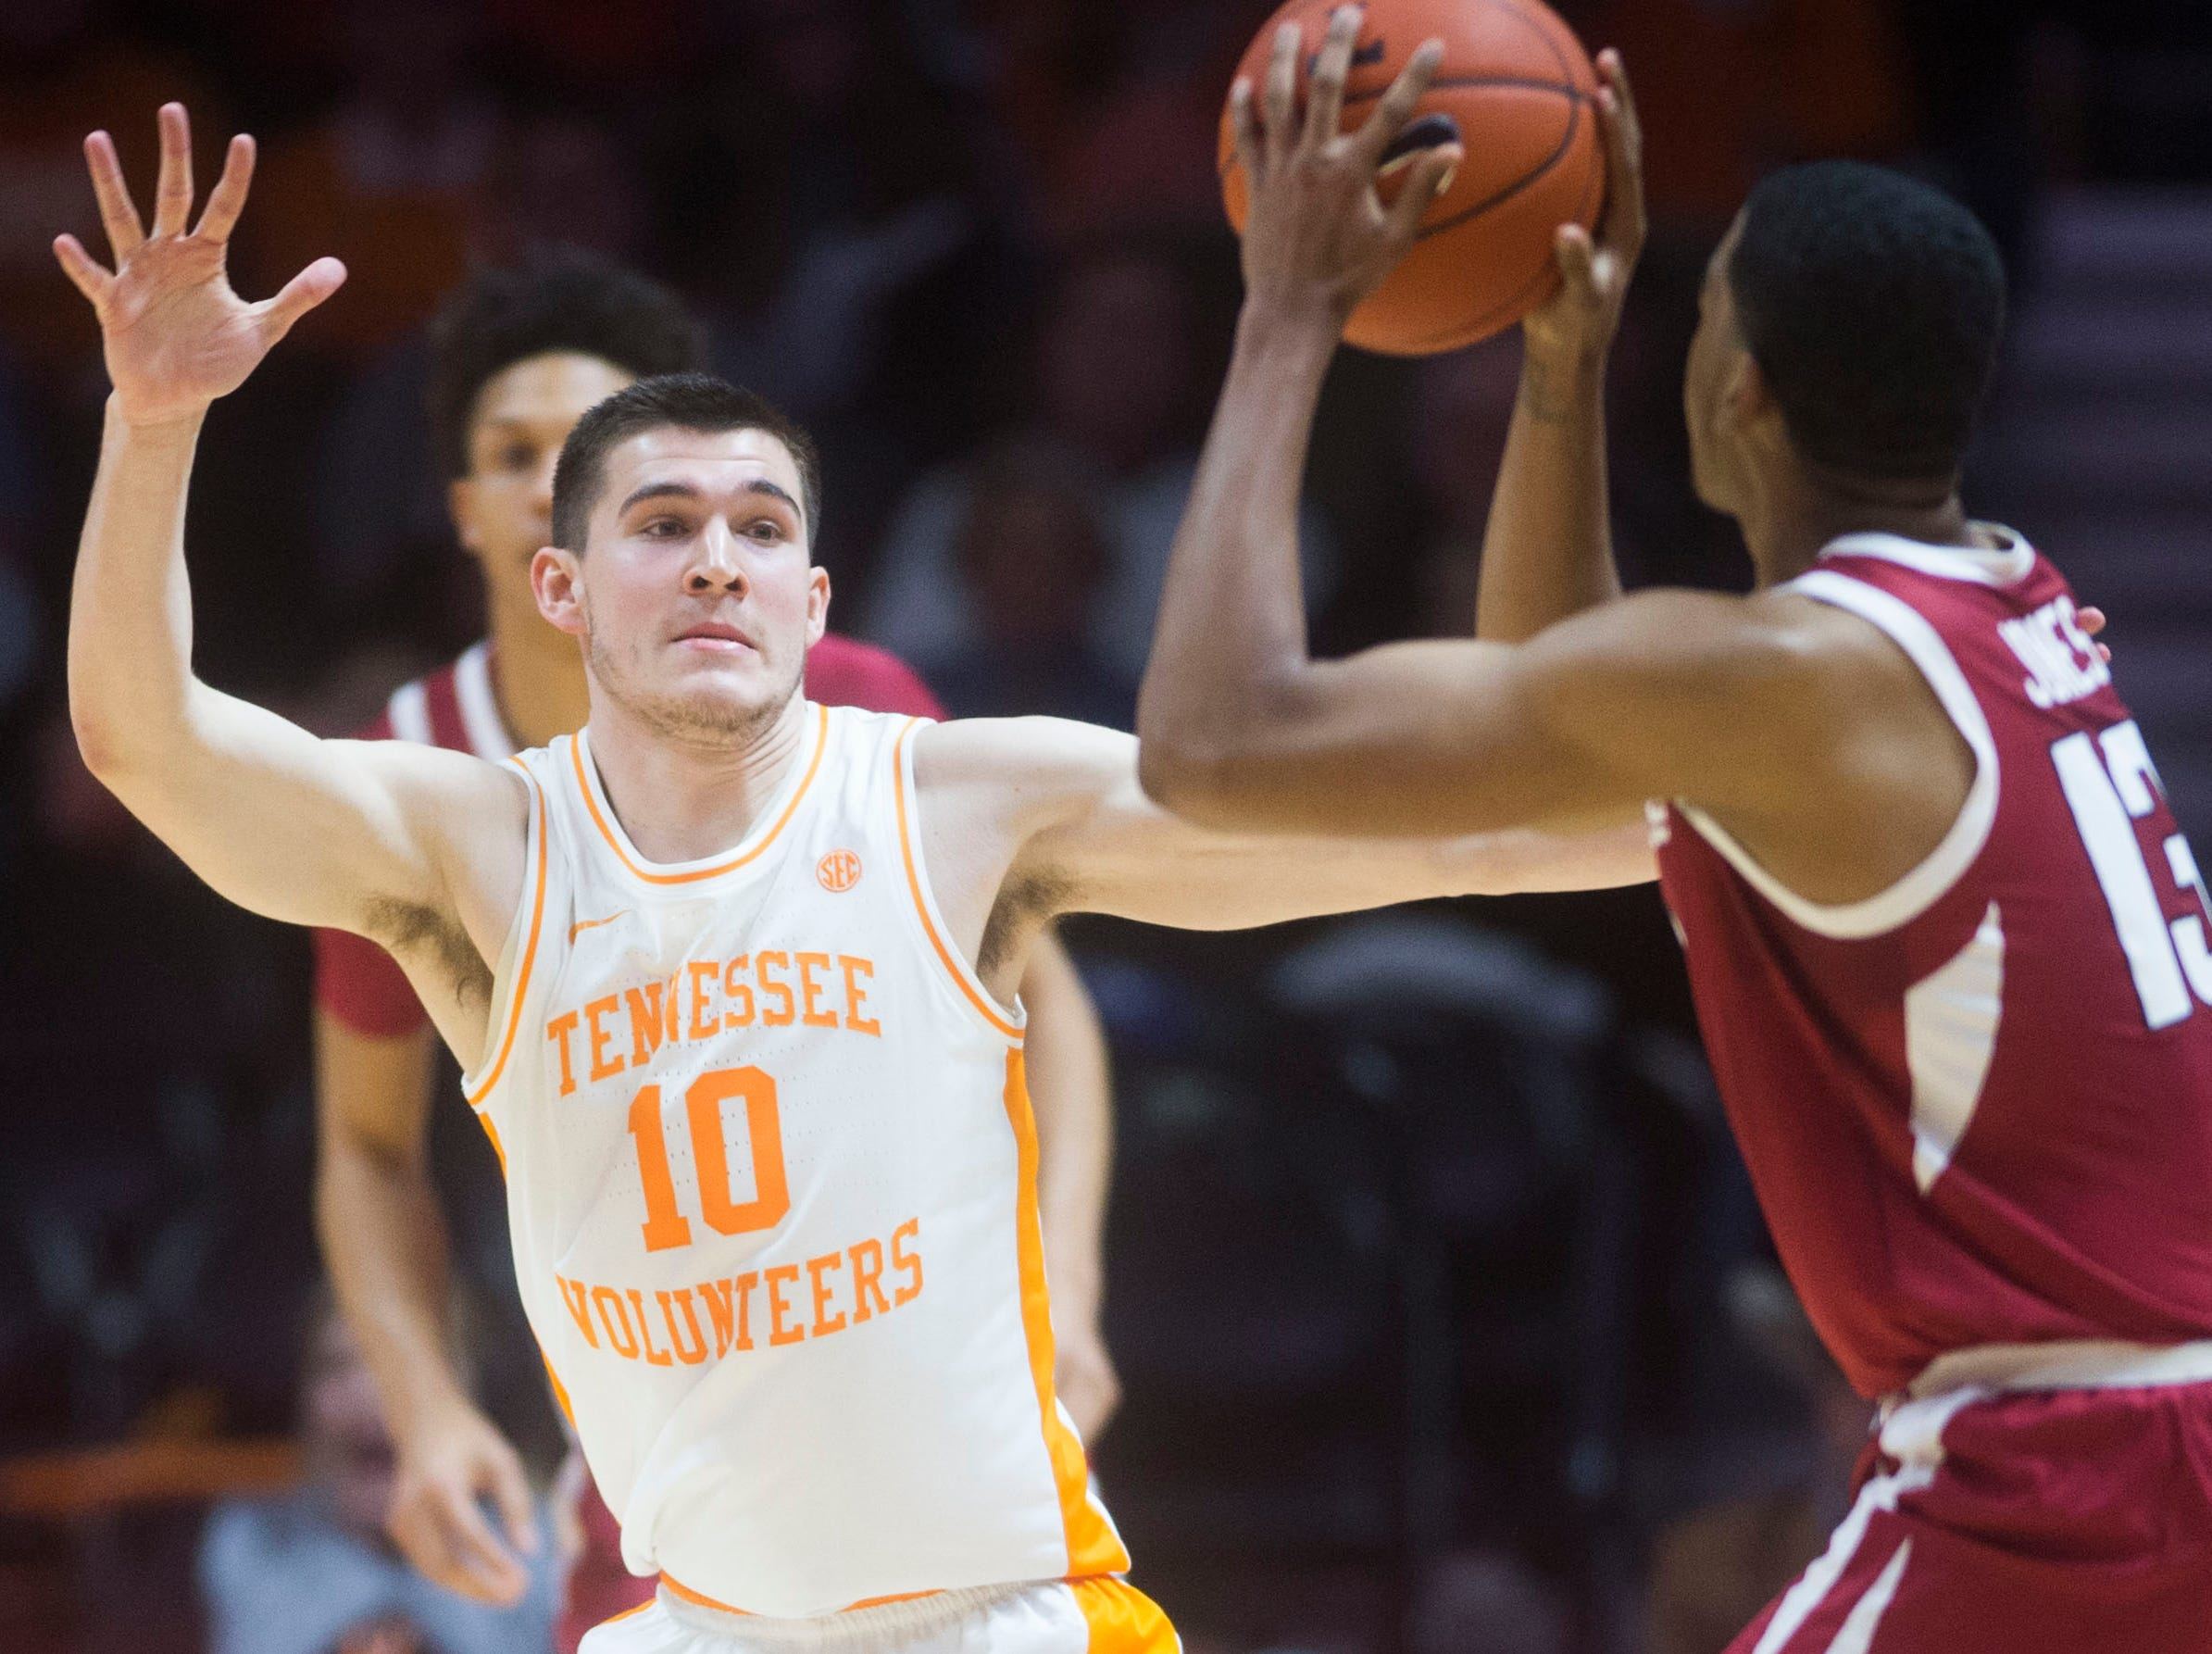 Tennessee's John Fulkerson (10) defends Arkansas' Mason Jones (13) during a NCAA men's basketball game between Tennessee and Arkansas at Thompson-Boling Arena Tuesday, Jan. 15, 2019. Tennessee defeated Arkansas 106-87.